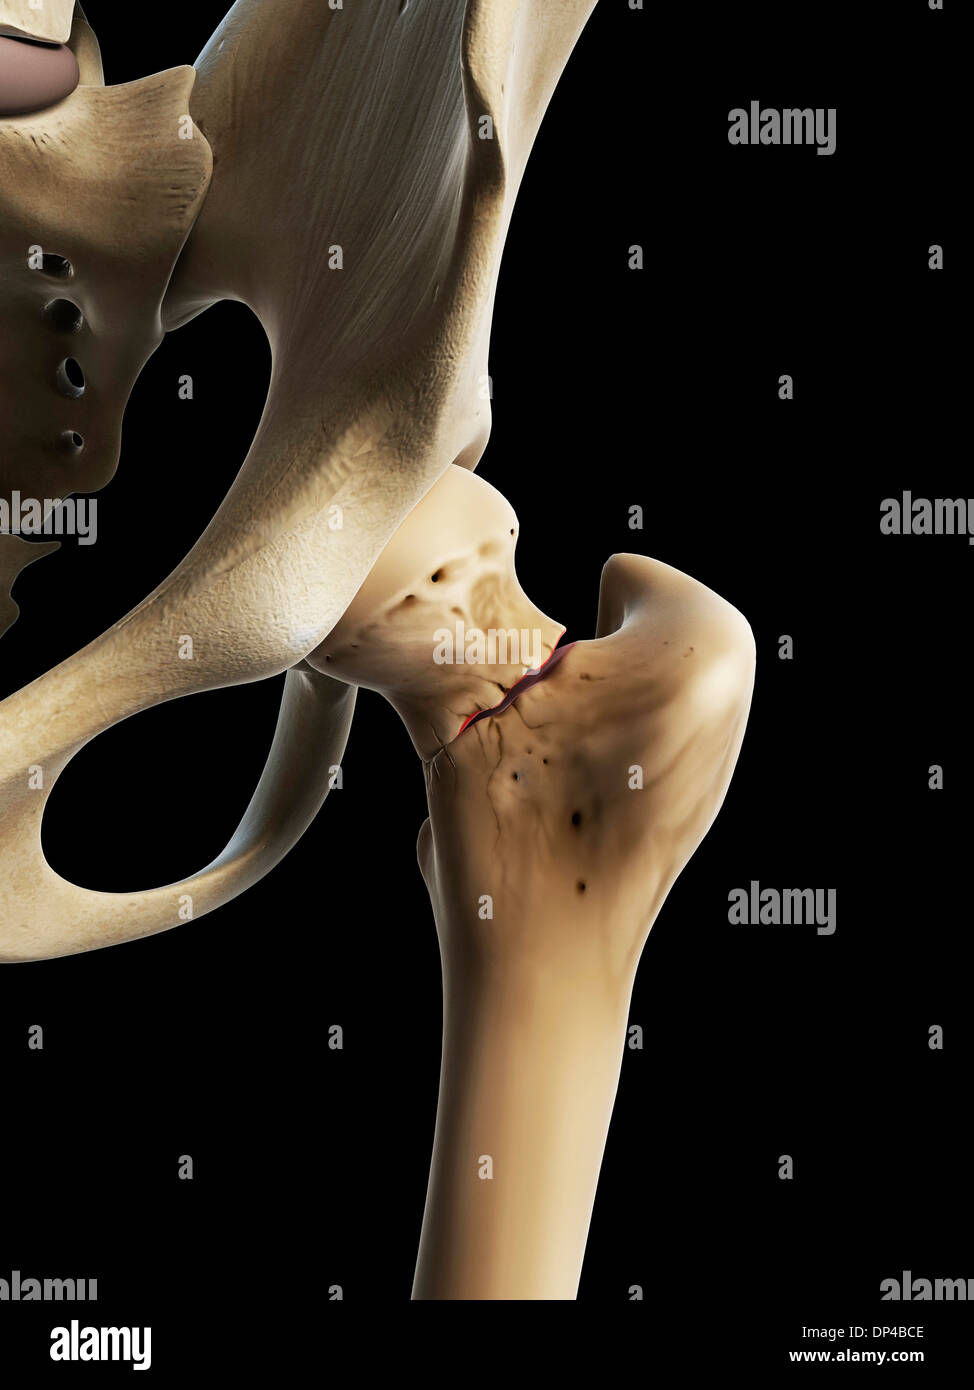 Hip fracture, artwork - Stock Image